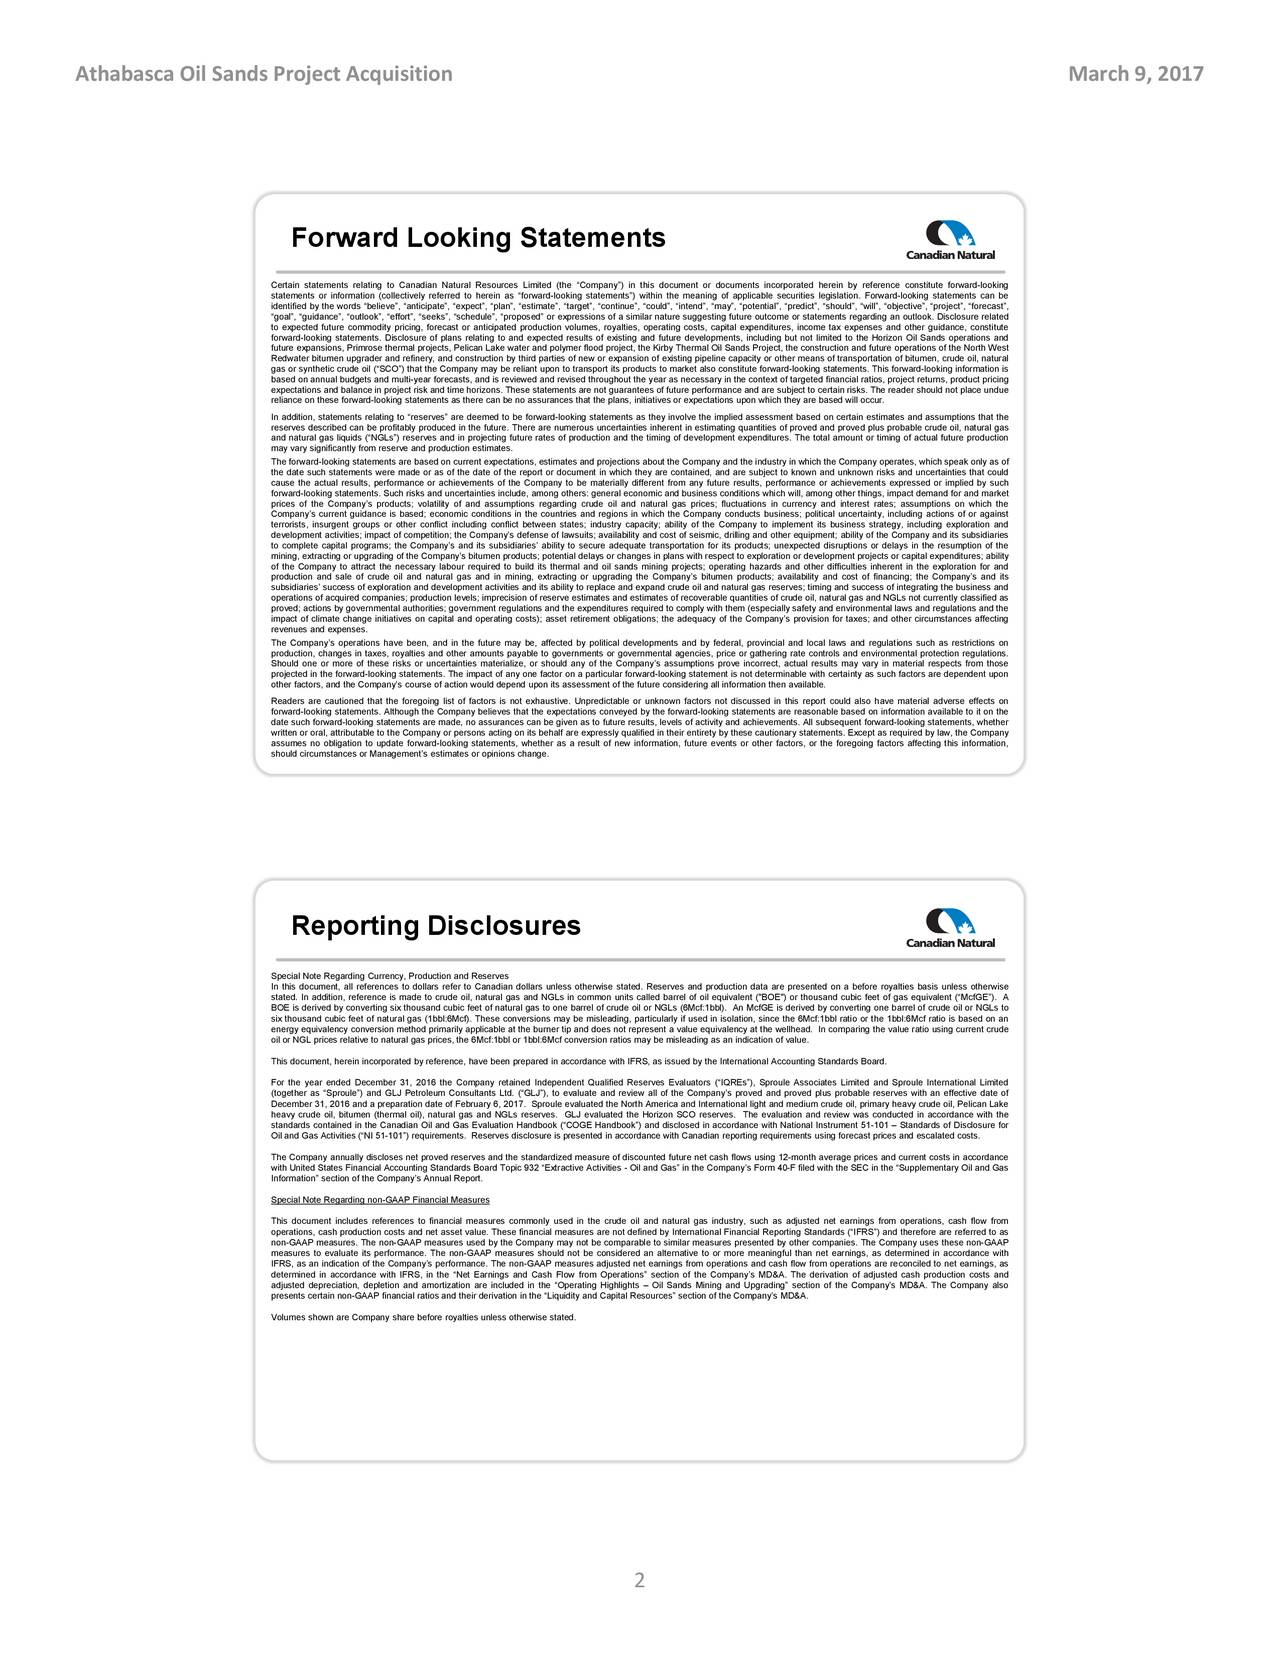 Forward Looking Statements Certain statements relating to Canadian Natural Resources Limited (the Company) in this document or documents incorporated herein by reference constitute forward-looking statements or information (collectively referred to herein as forward-looking statements) within the meaning of applicable securities legislation. Forward-looking statements can be identified by the words believe, anticipate, expect, plan, estimate, target, continue, could, intend, may, potential, predict, should, will, objective, project, forecast, goal, guidance, outlook, effort, seeks, schedule, proposed or expressions of a similar nature suggesting future outcome or statements regarding an outlook. Disclosure related to expected future commodity pricing, forecast or anticipated production volumes, royalties, operating costs, capital expenditures, income tax expenses and other guidance, constitute forward-looking statements. Disclosure of plans relating to and expected results of existing and future developments, including but not limited tothe Horizon Oil Sands operations and future expansions, Primrose thermal projects, Pelican Lake water and polymer flood project, the Kirby Thermal Oil Sands Project, the construction and future operations of the North West Redwater bitumen upgrader and refinery, and construction by third parties of new or expansion of existing pipeline capacity or other means of transportation of bitumen, crude oil, natural gas or synthetic crude oil (SCO) that the Company may be reliant upon to transport its products to market also constitute forward-looking statemenst. This forward-looking information is based on annual budgets and multi-year forecasts, and is reviewed and revised throughout the year as necessary in the context of targeted financial ratios, project returns, product pricing expectations and balance in project risk and time horizons. These statements are not guarantees of future performance and are subject to certain risks. The reade